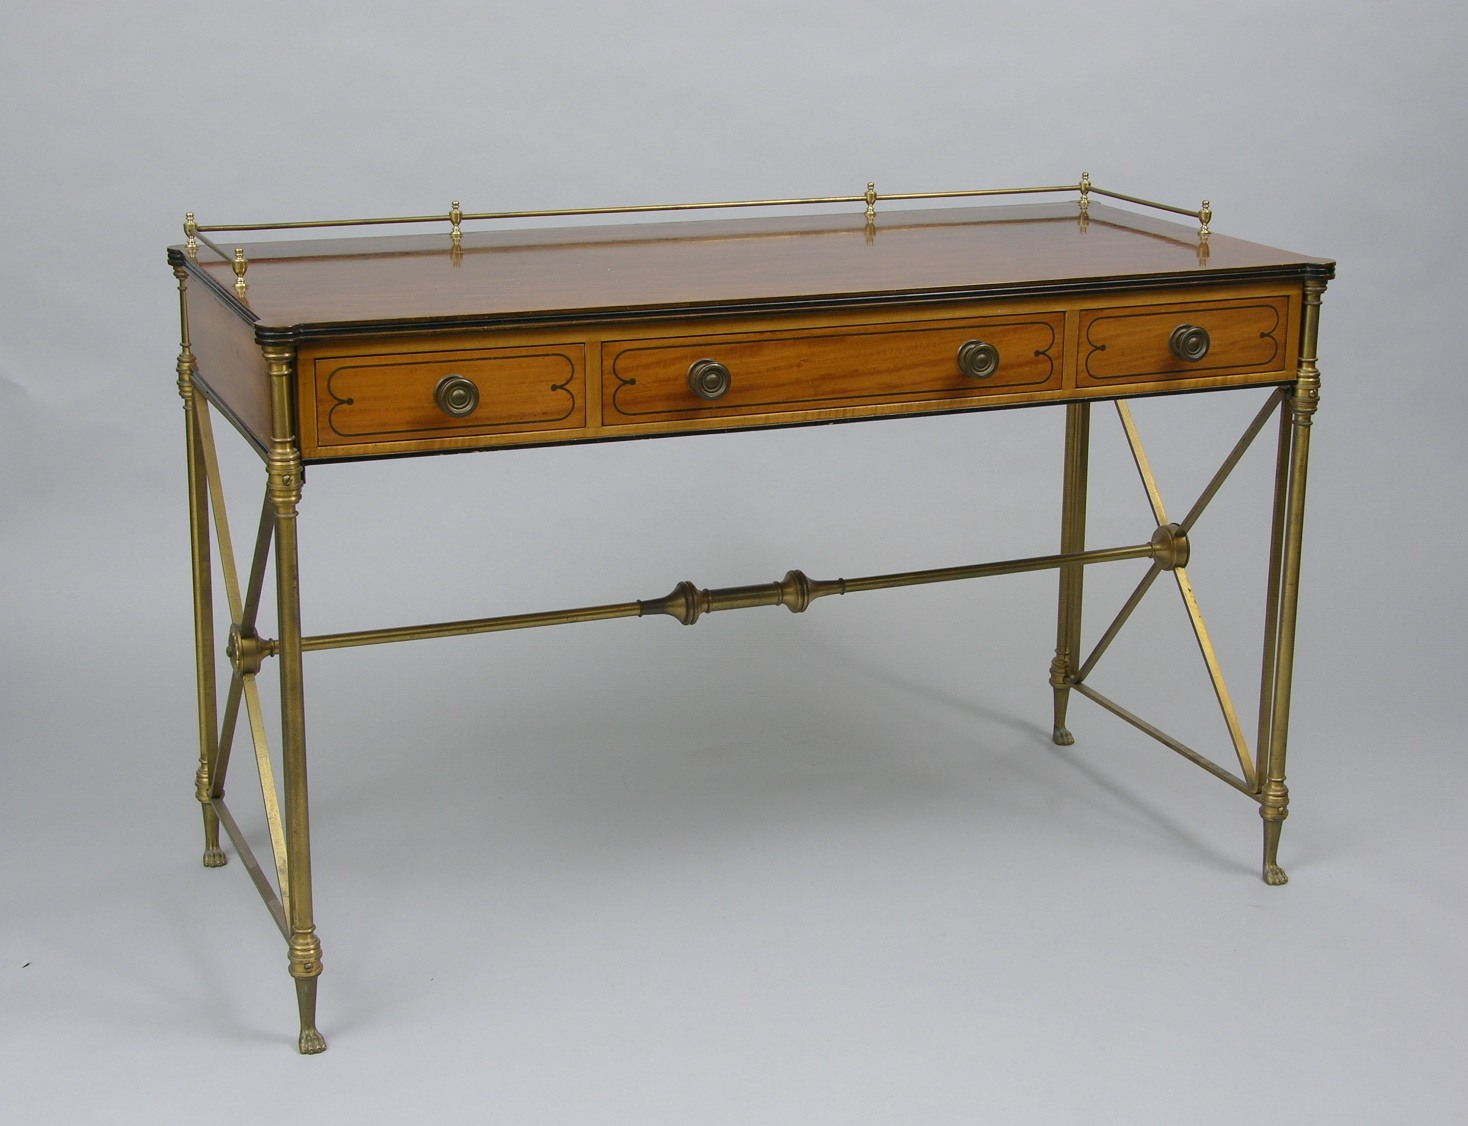 A Vintage Kittinger Campaign Desk. A Vintage Kittinger Campaign Desk  05 19 06  Sold   2127 5